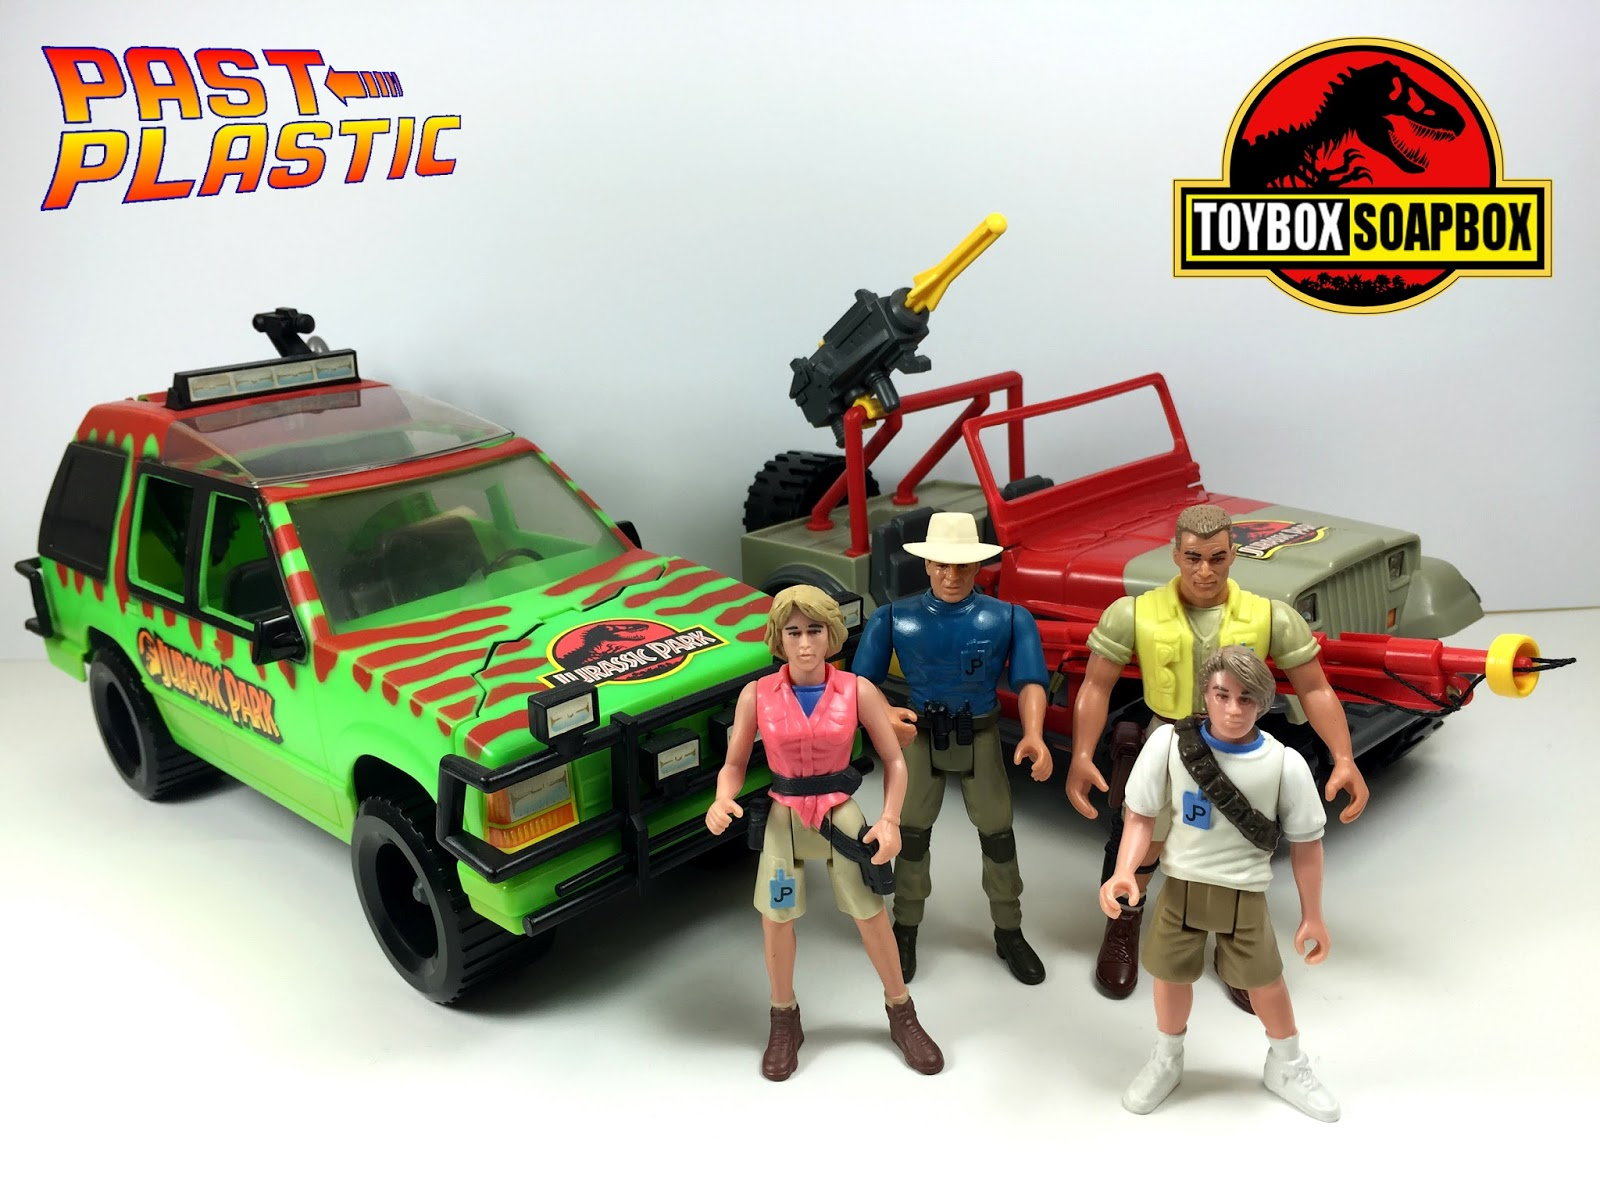 Past Plastic Kenner Jurassic Park on figure 8 race cars